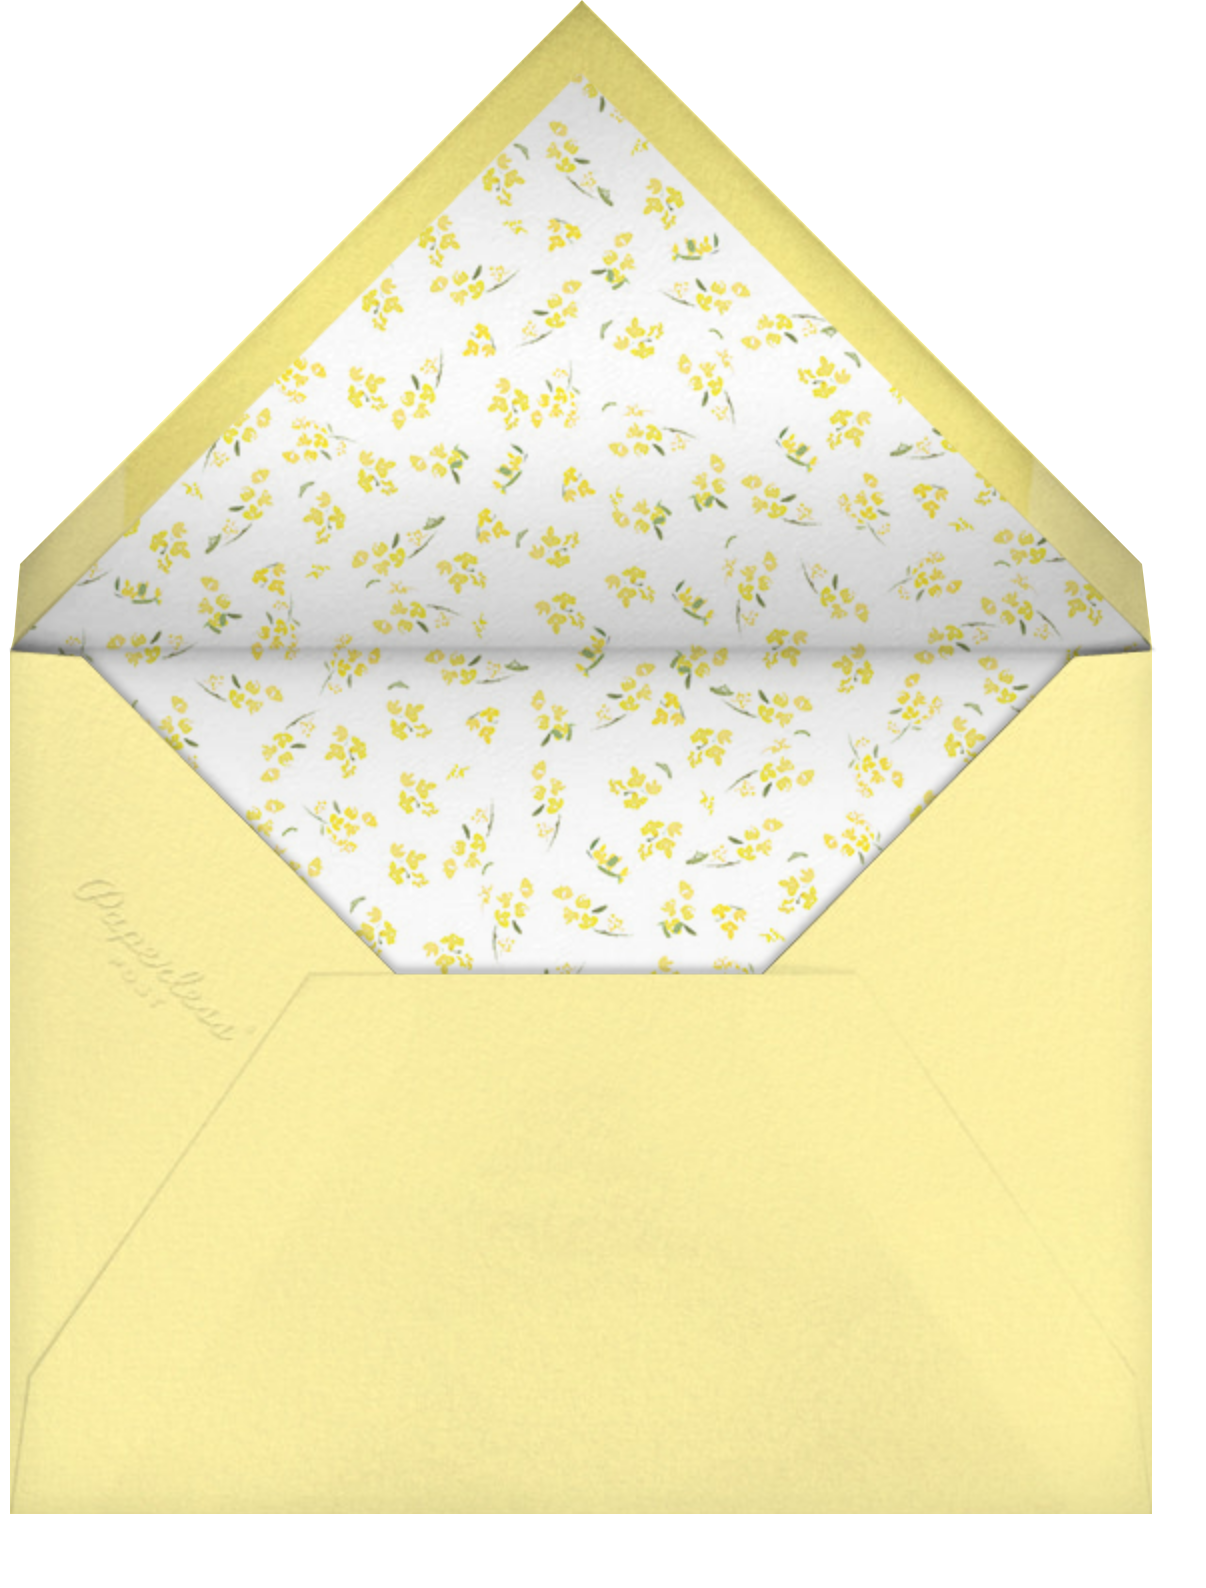 Heathers (Square) - Yellow - Paperless Post - Graduation party - envelope back